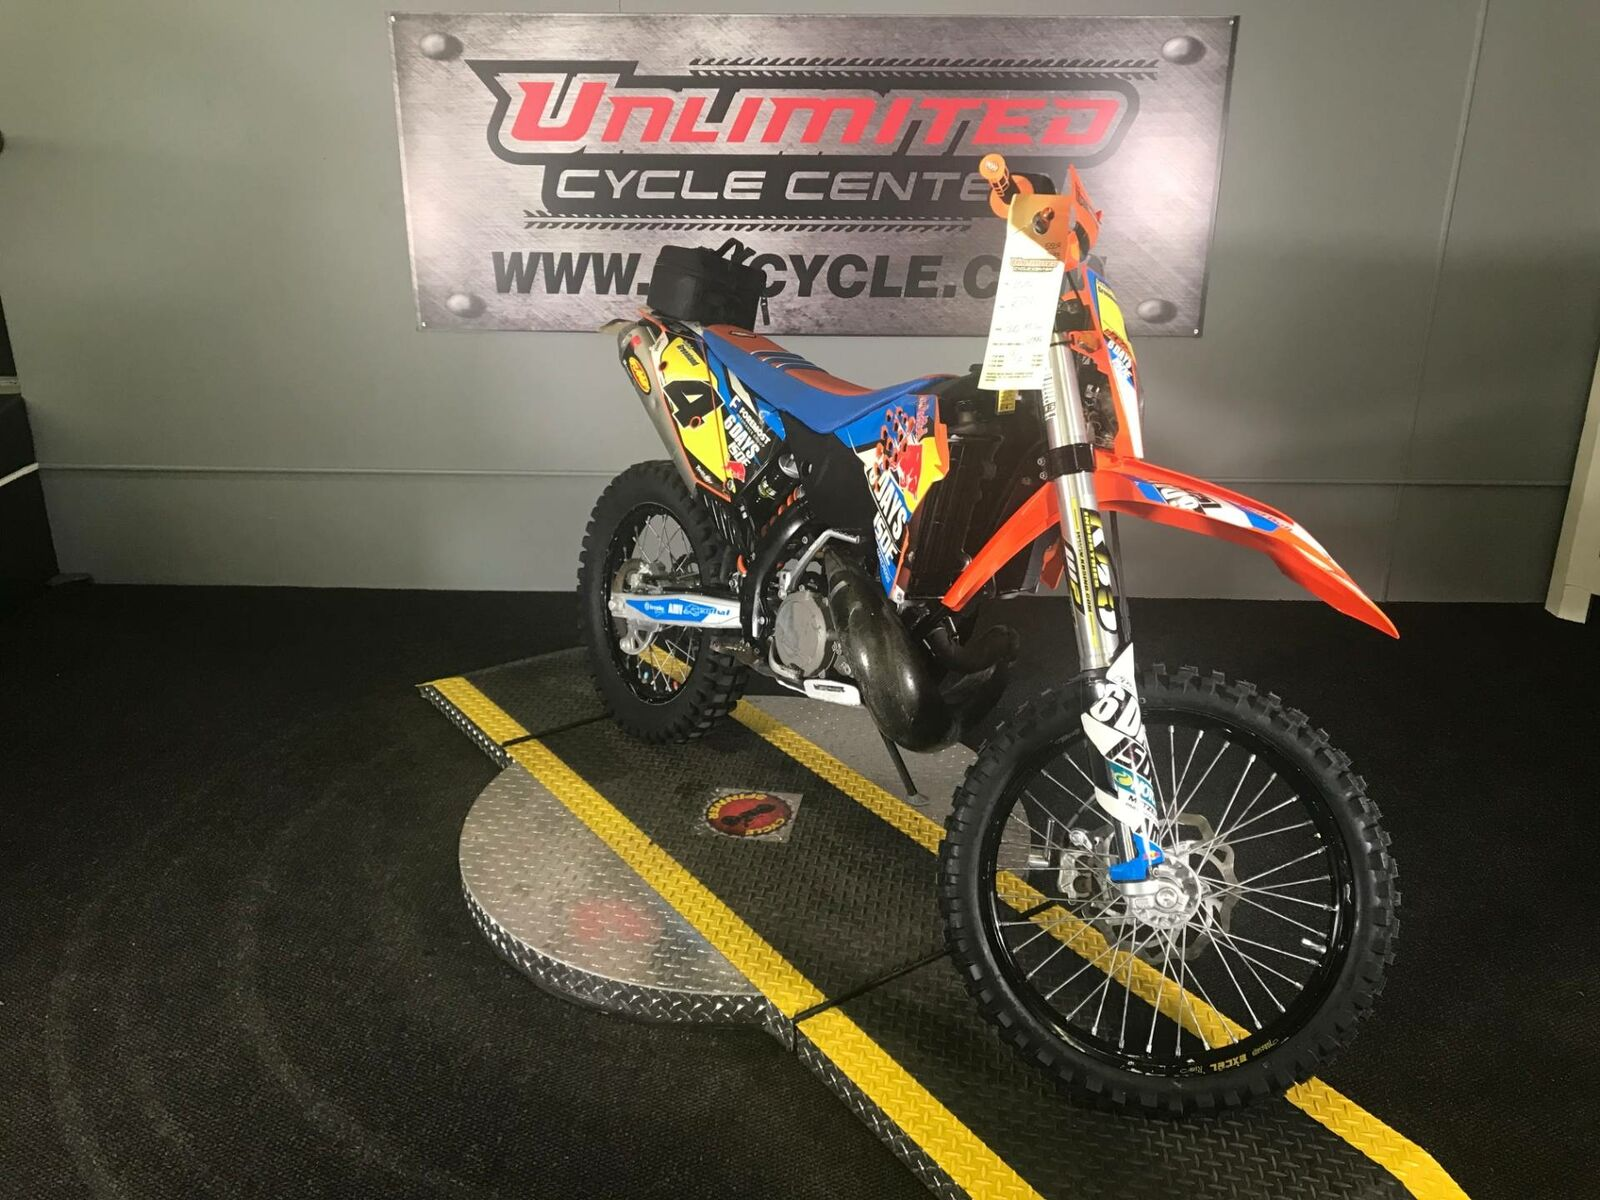 Picture of A 2010 KTM 300 XC-W